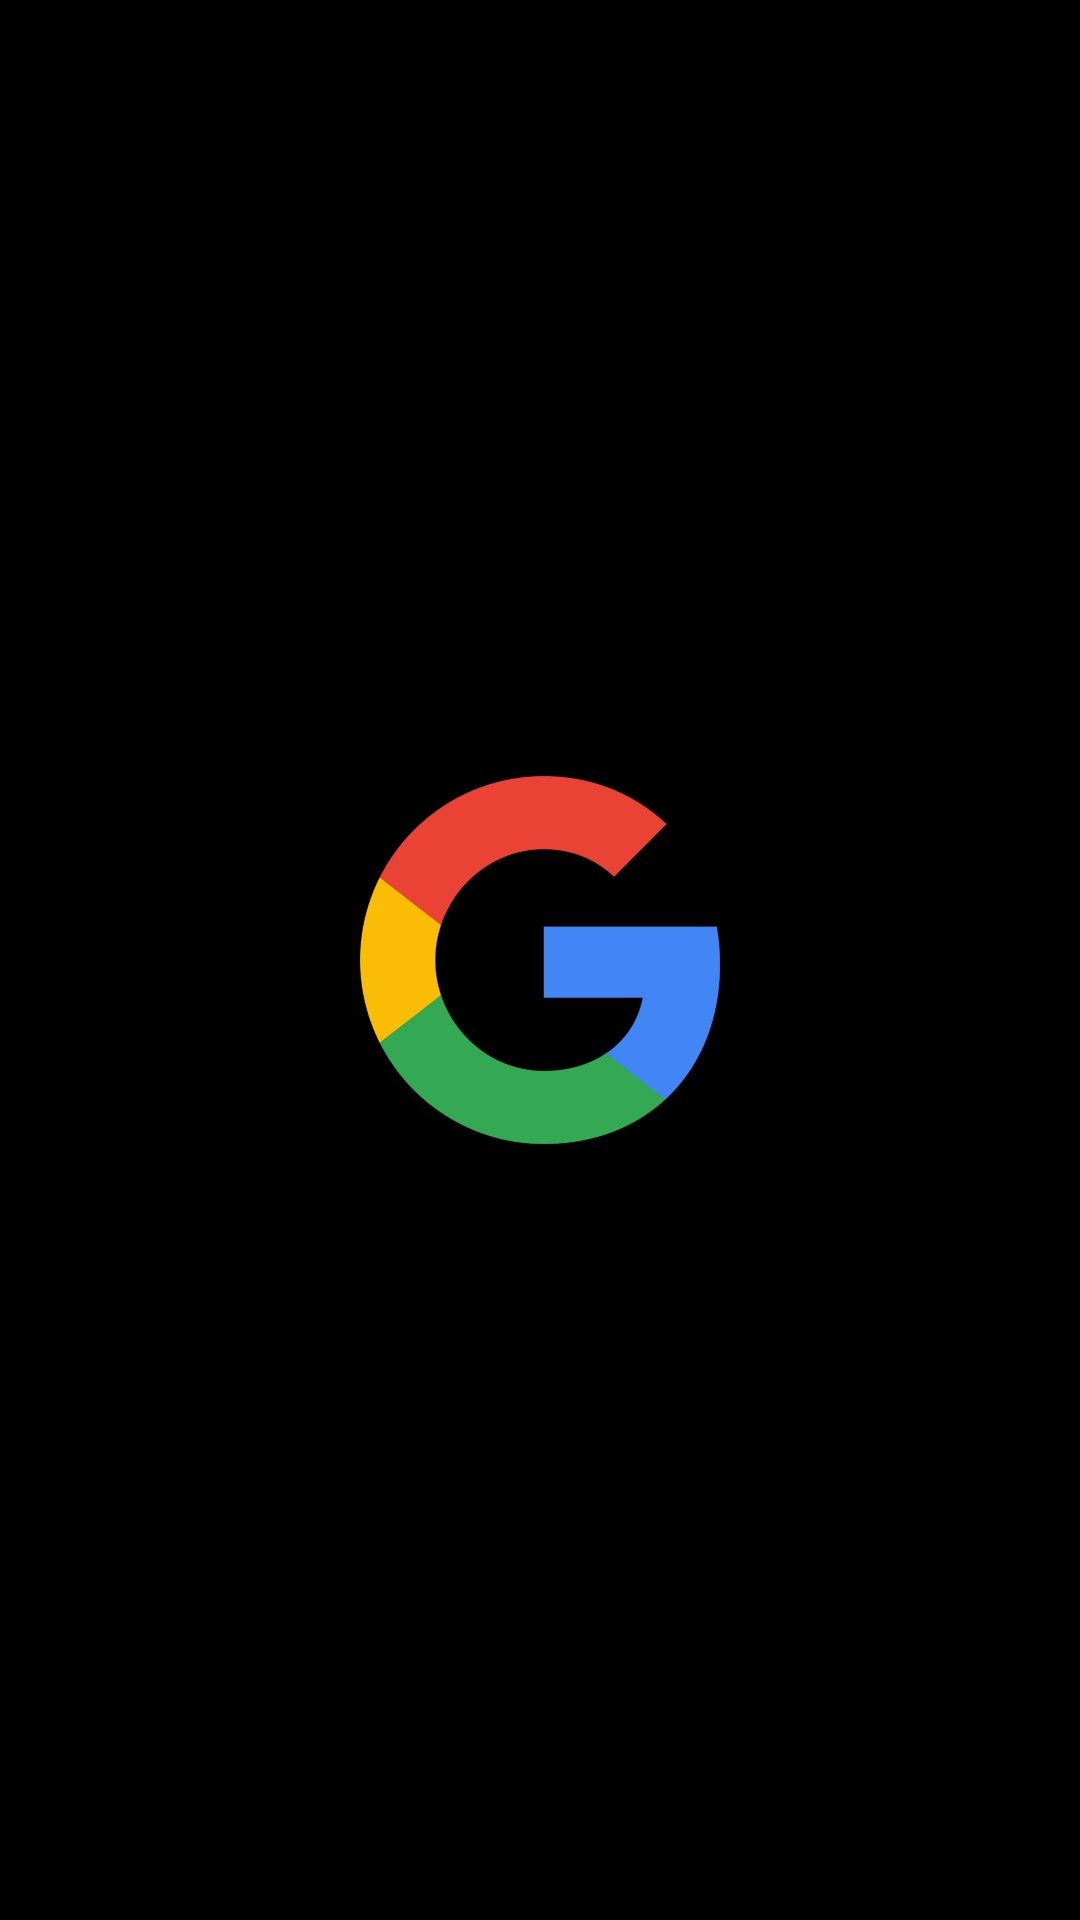 Wallpaper Google Pixel Wallpaper Logo Wallpaper Hd Android Wallpaper Space